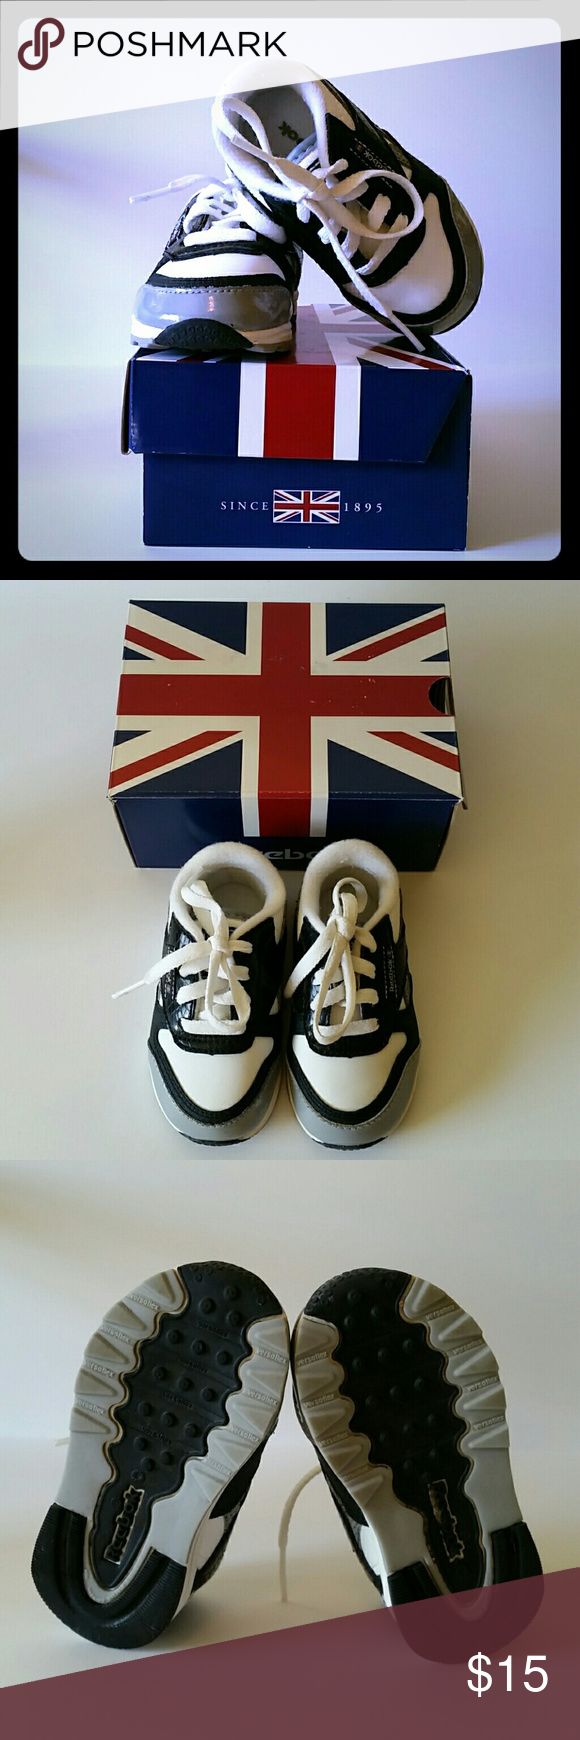 KIDS Reebok baby shoes size 4 Used with box-  Reebok baby shoes with patent leather detail in black, gray and white.  Size 4 Reebok Shoes Sneakers